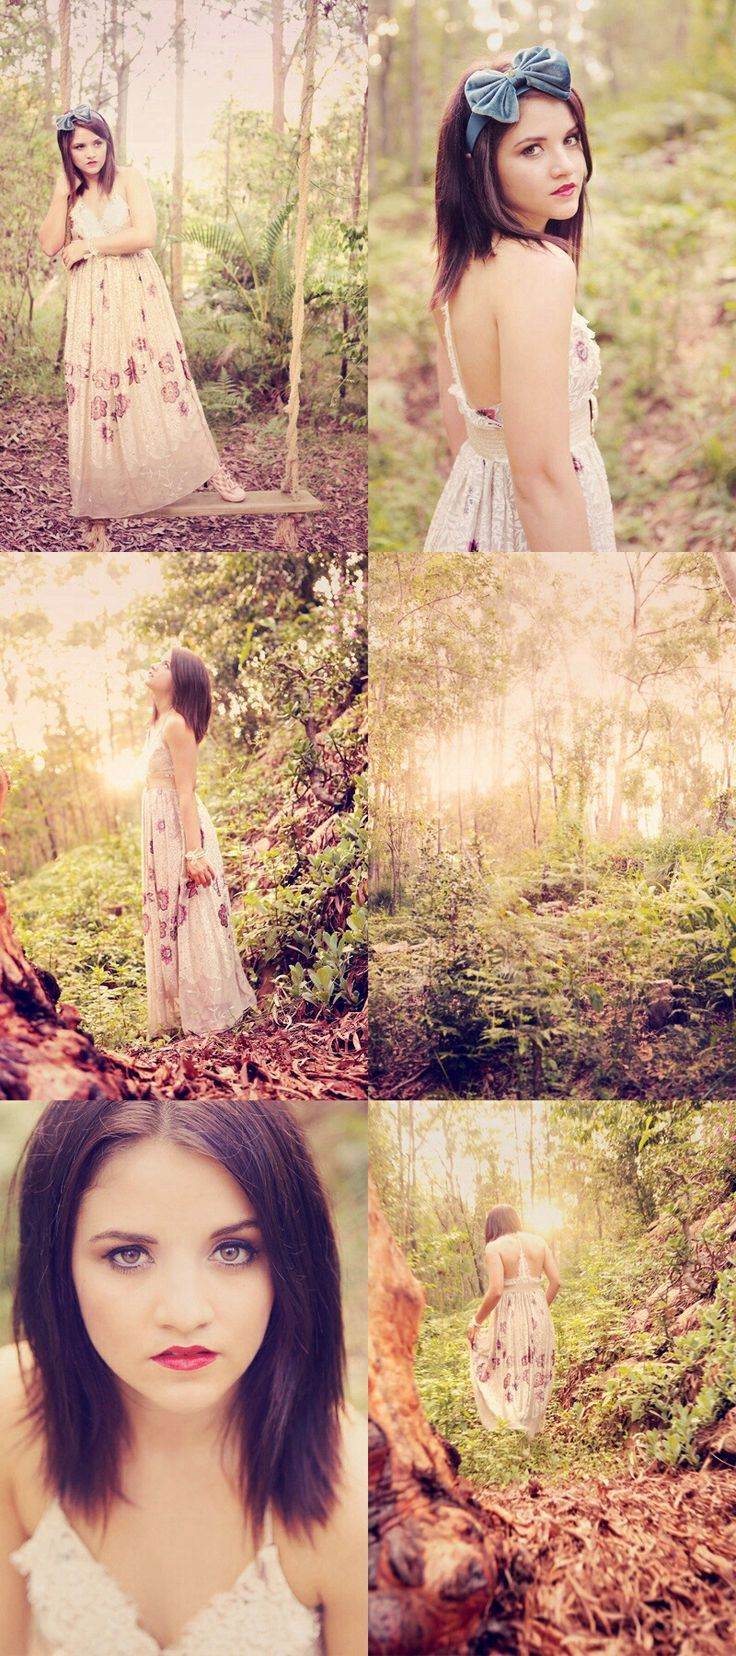 10 best Forest Photoshoot Ideas images on Pinterest ...